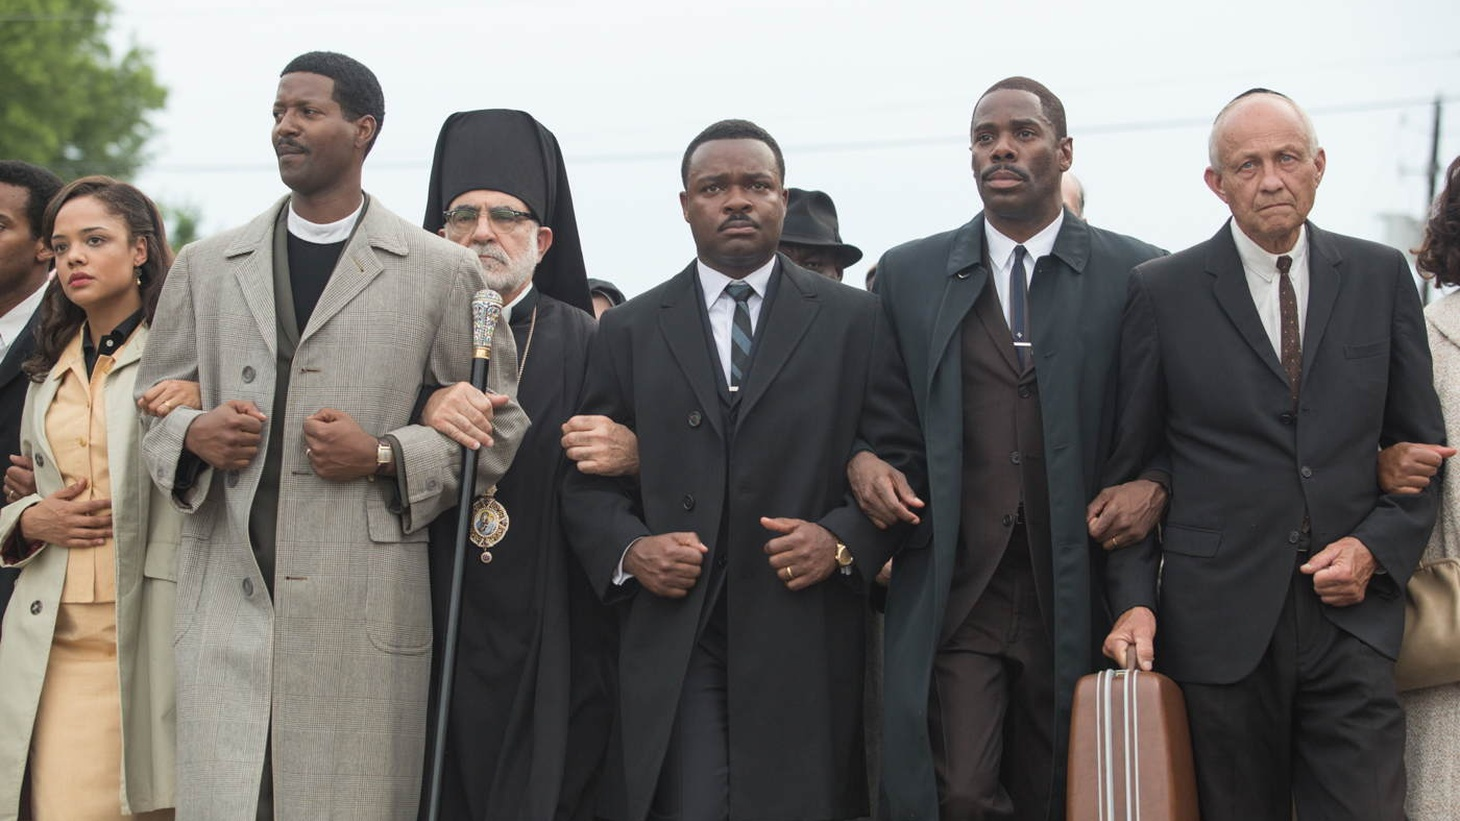 """Selma"" is a drama based on Martin Luther King Jr.'s voting rights marches, starring David Oyelowo, Carmen Ejogo, and Tim Roth."